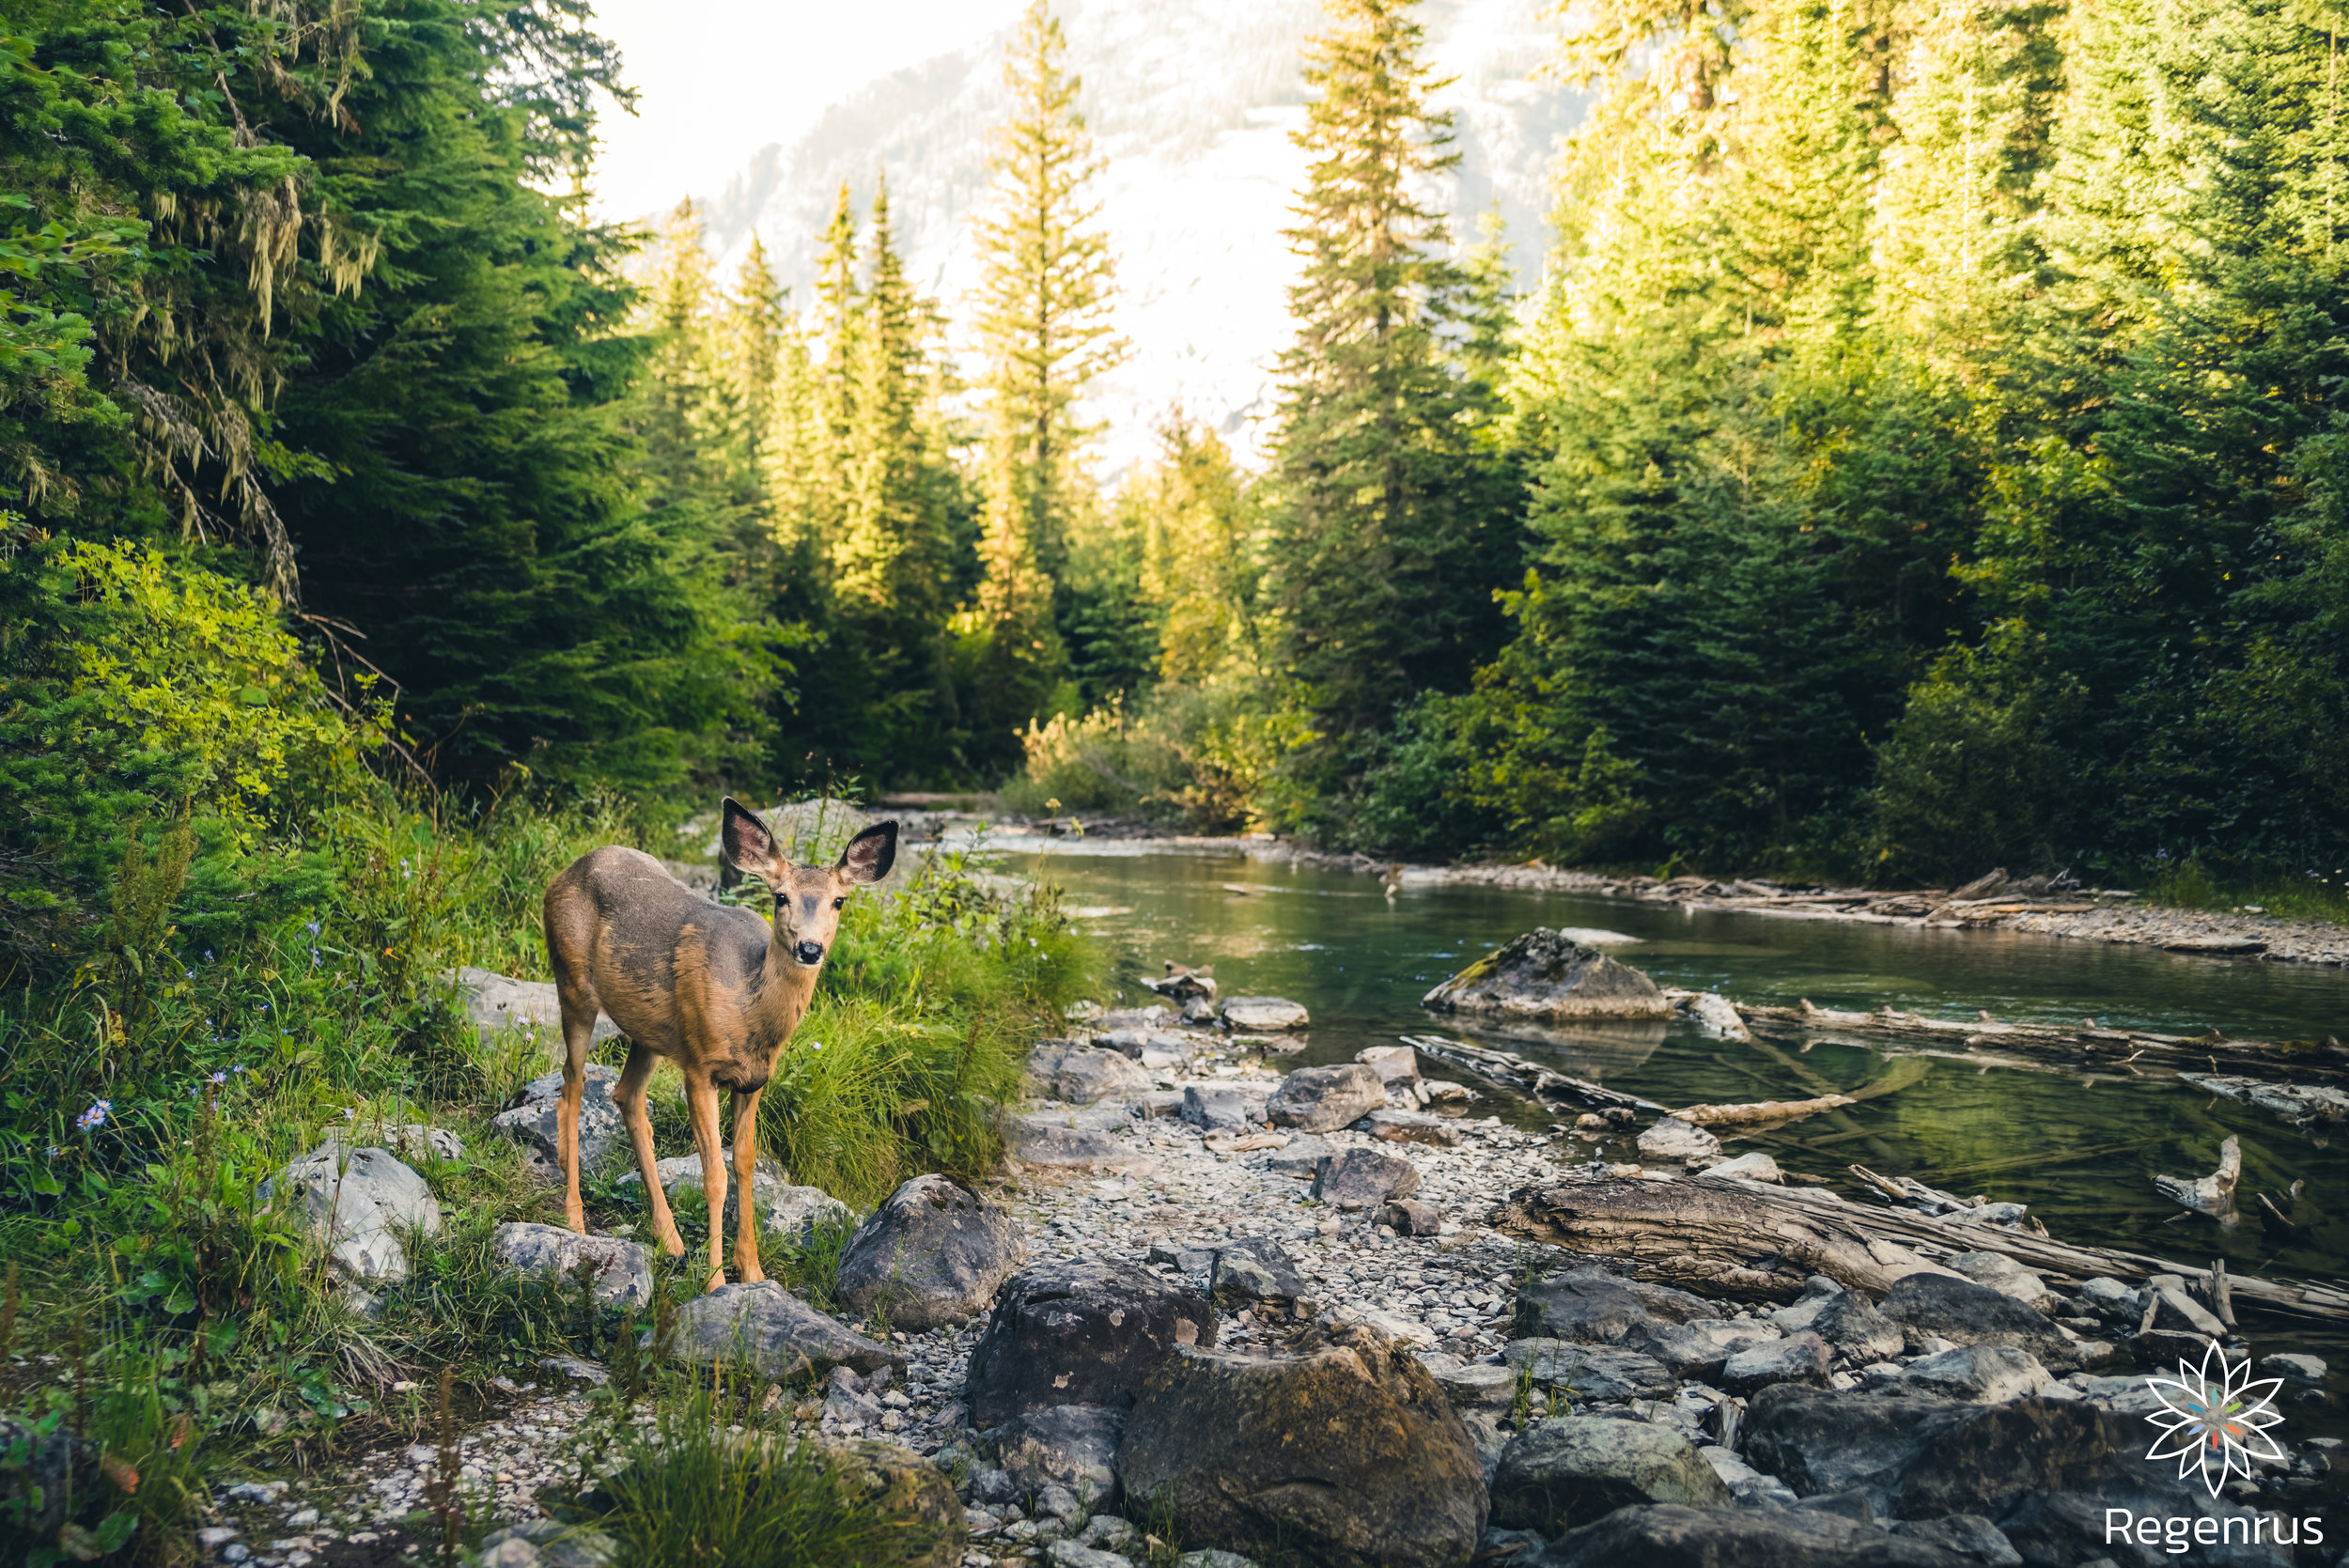 When we take time to cultivate from the heart, environments like the animal ecosystem benefit greatly.